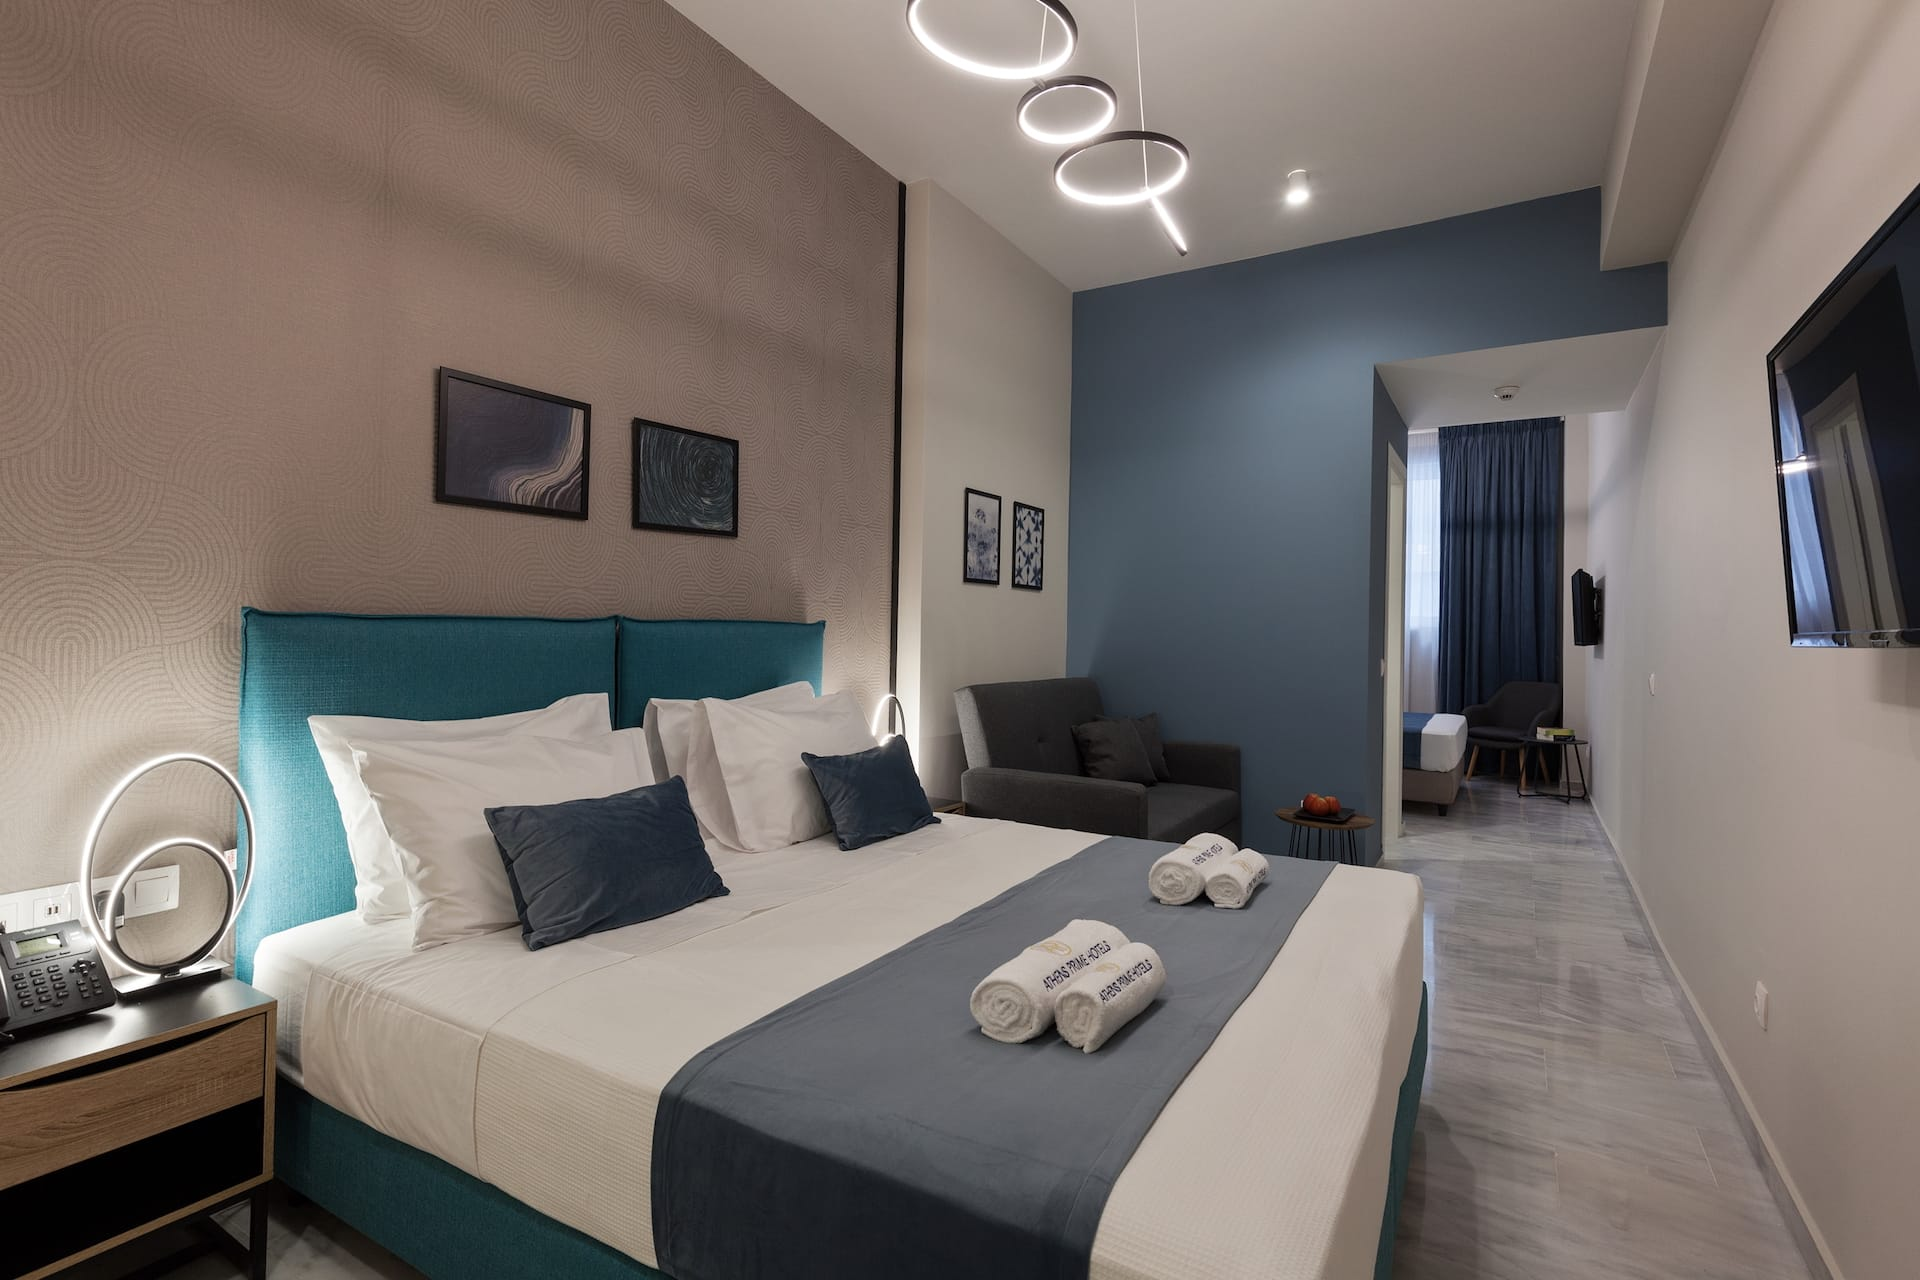 Inside one of the rooms of the Trendy by Athens Prime Hotels. Double bed with white & blue pillows.